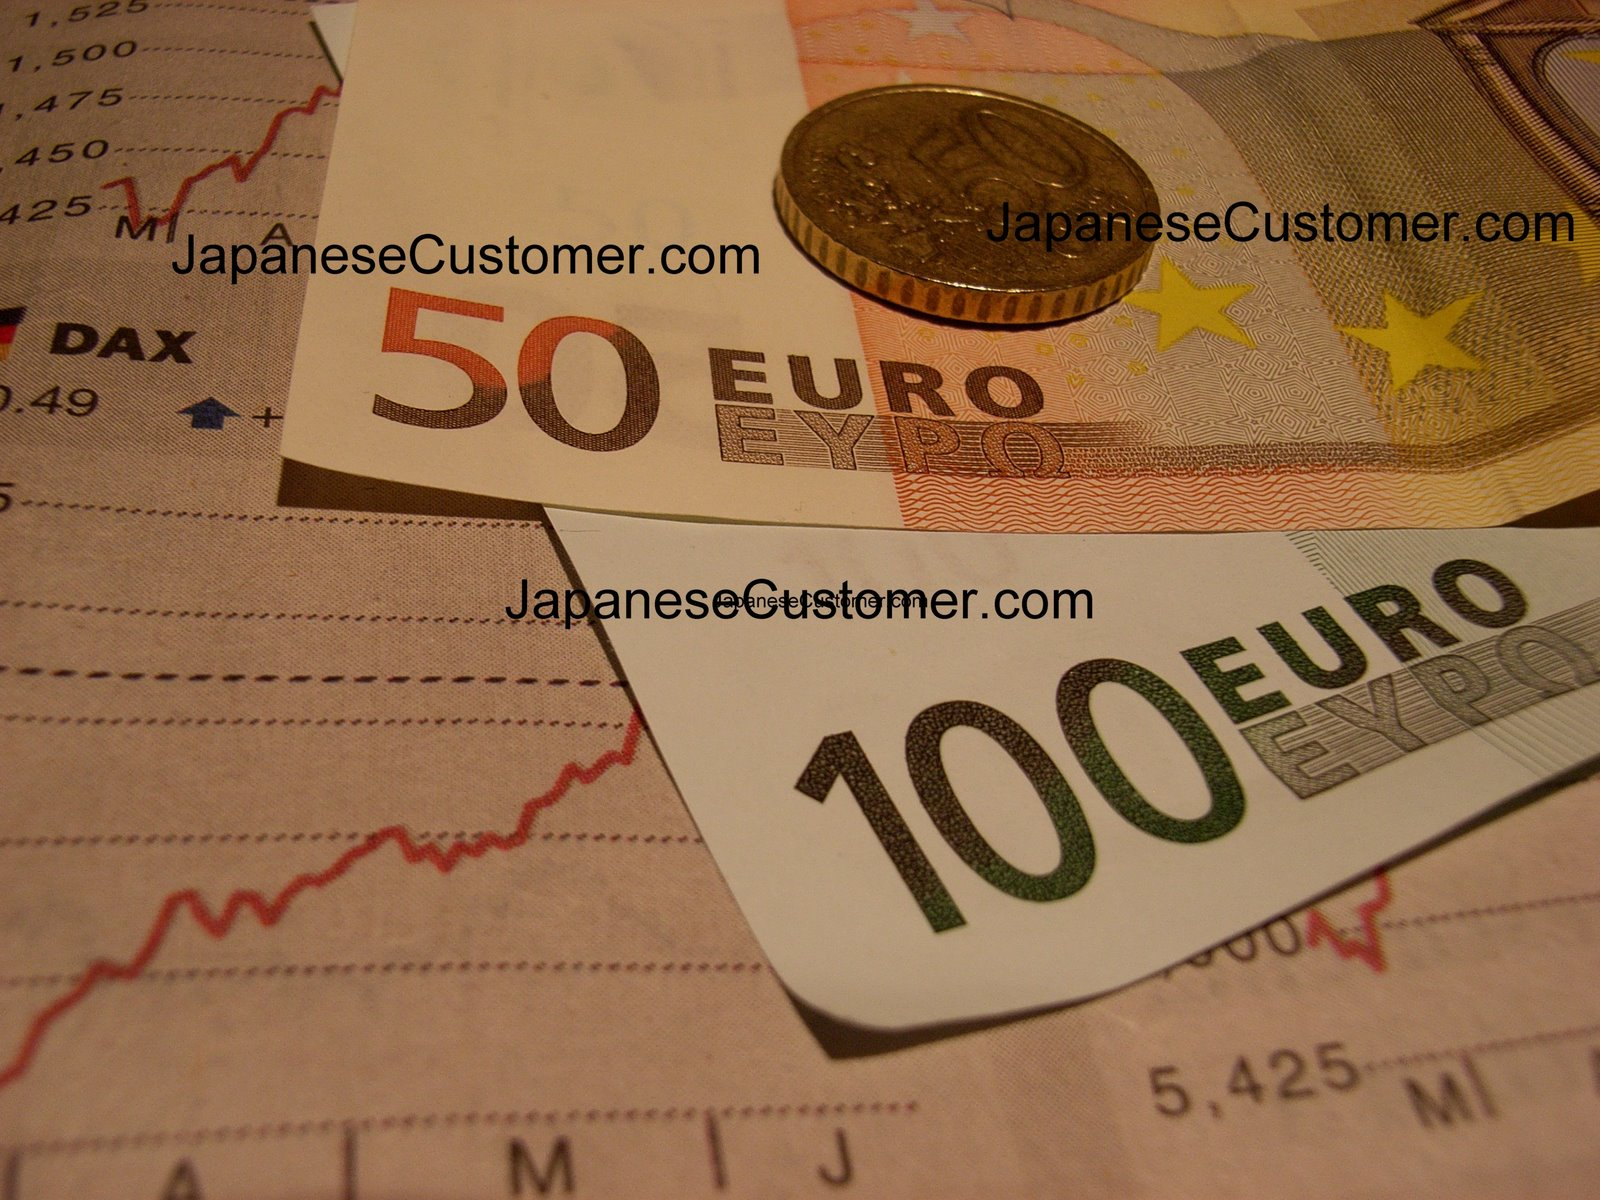 economic currency markets www.japanesecustomer.com